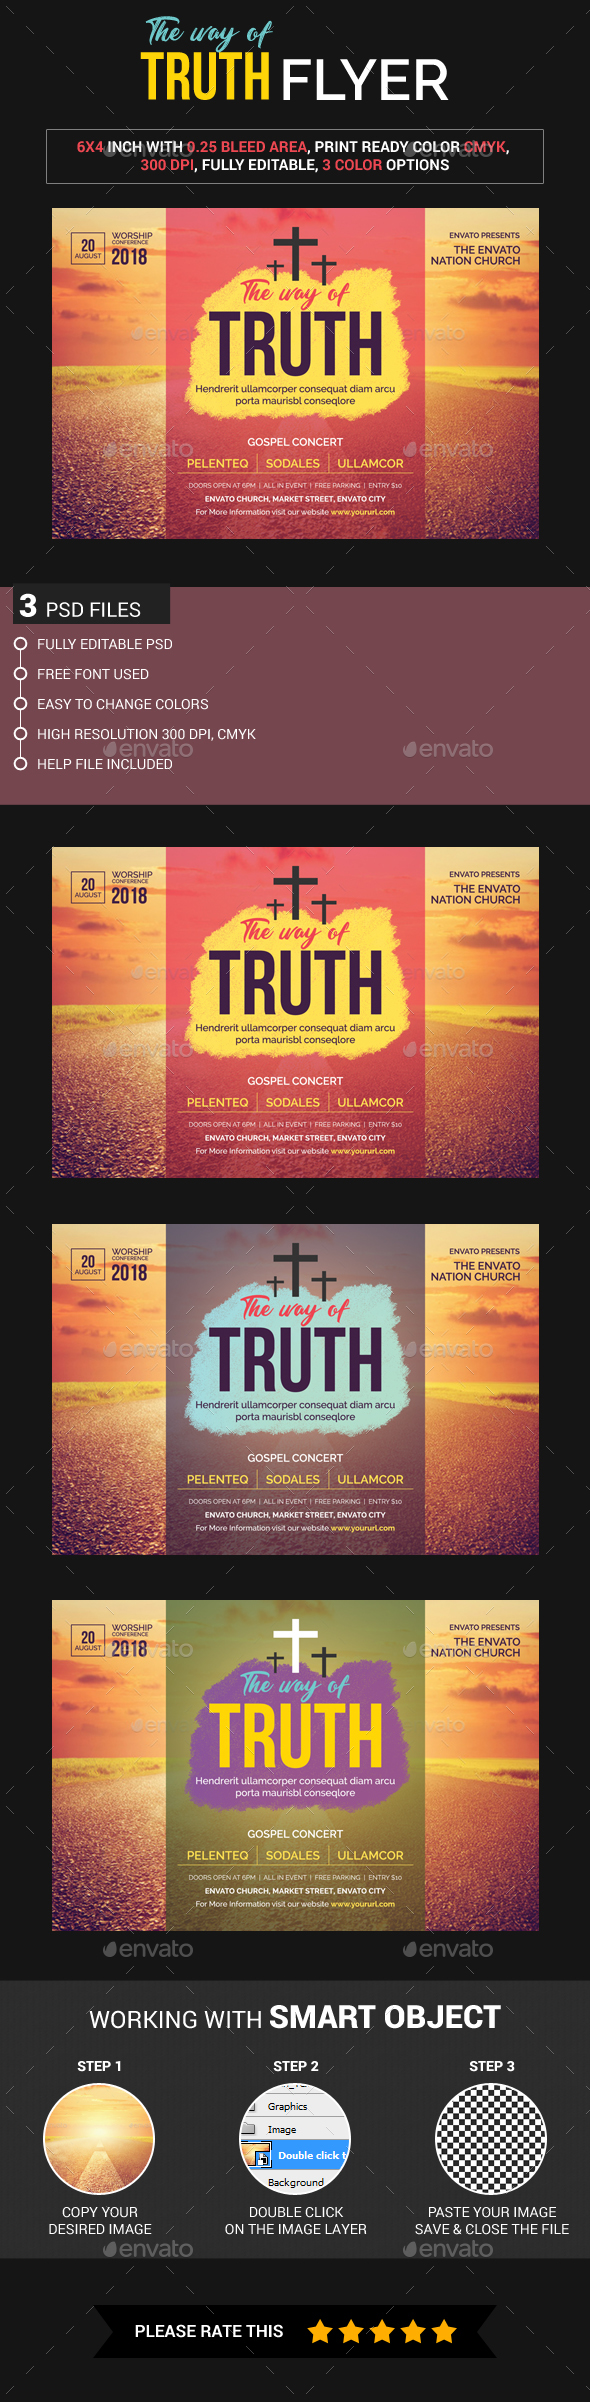 The Way Of Truth Flyer - Church Flyers